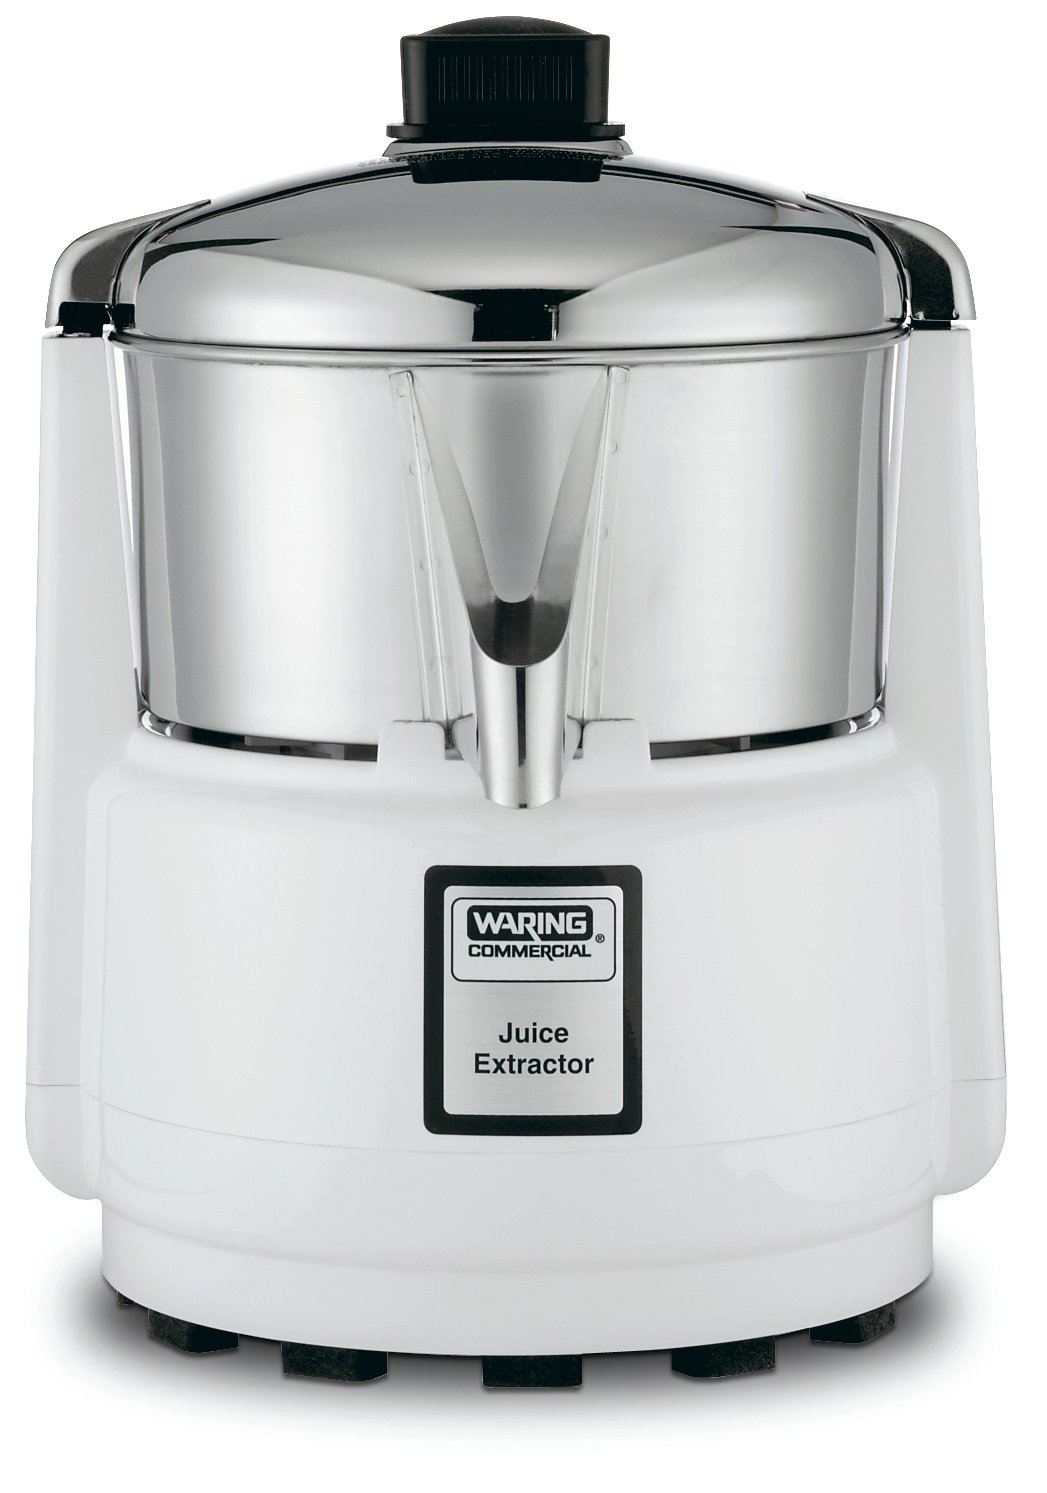 Waring Commercial 6001C Heavy-Duty Bar Juice Extractor